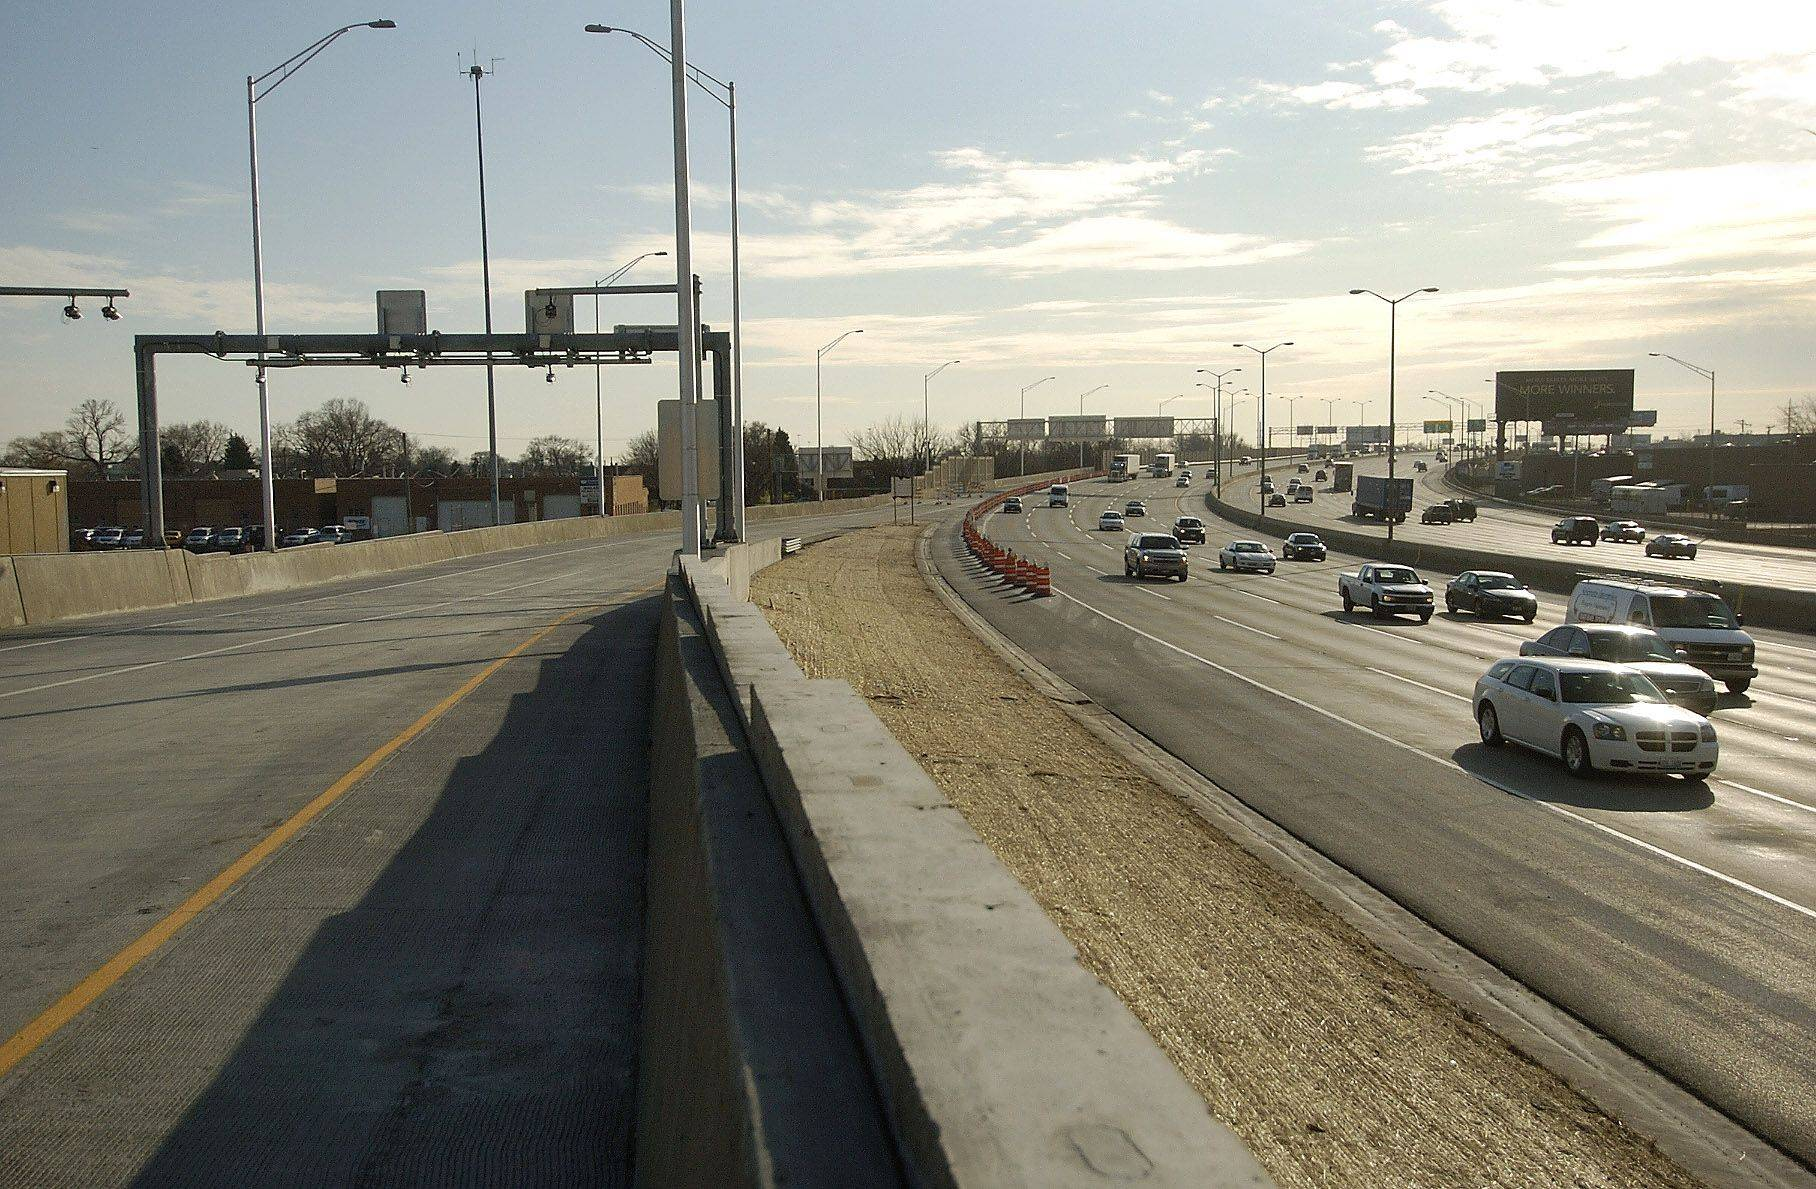 Construction is finished on the Balmoral off-ramp for the northbound Tri-State Tollway and the barricades were removed after a ribbon-cutting ceremony at 11 a.m. today.